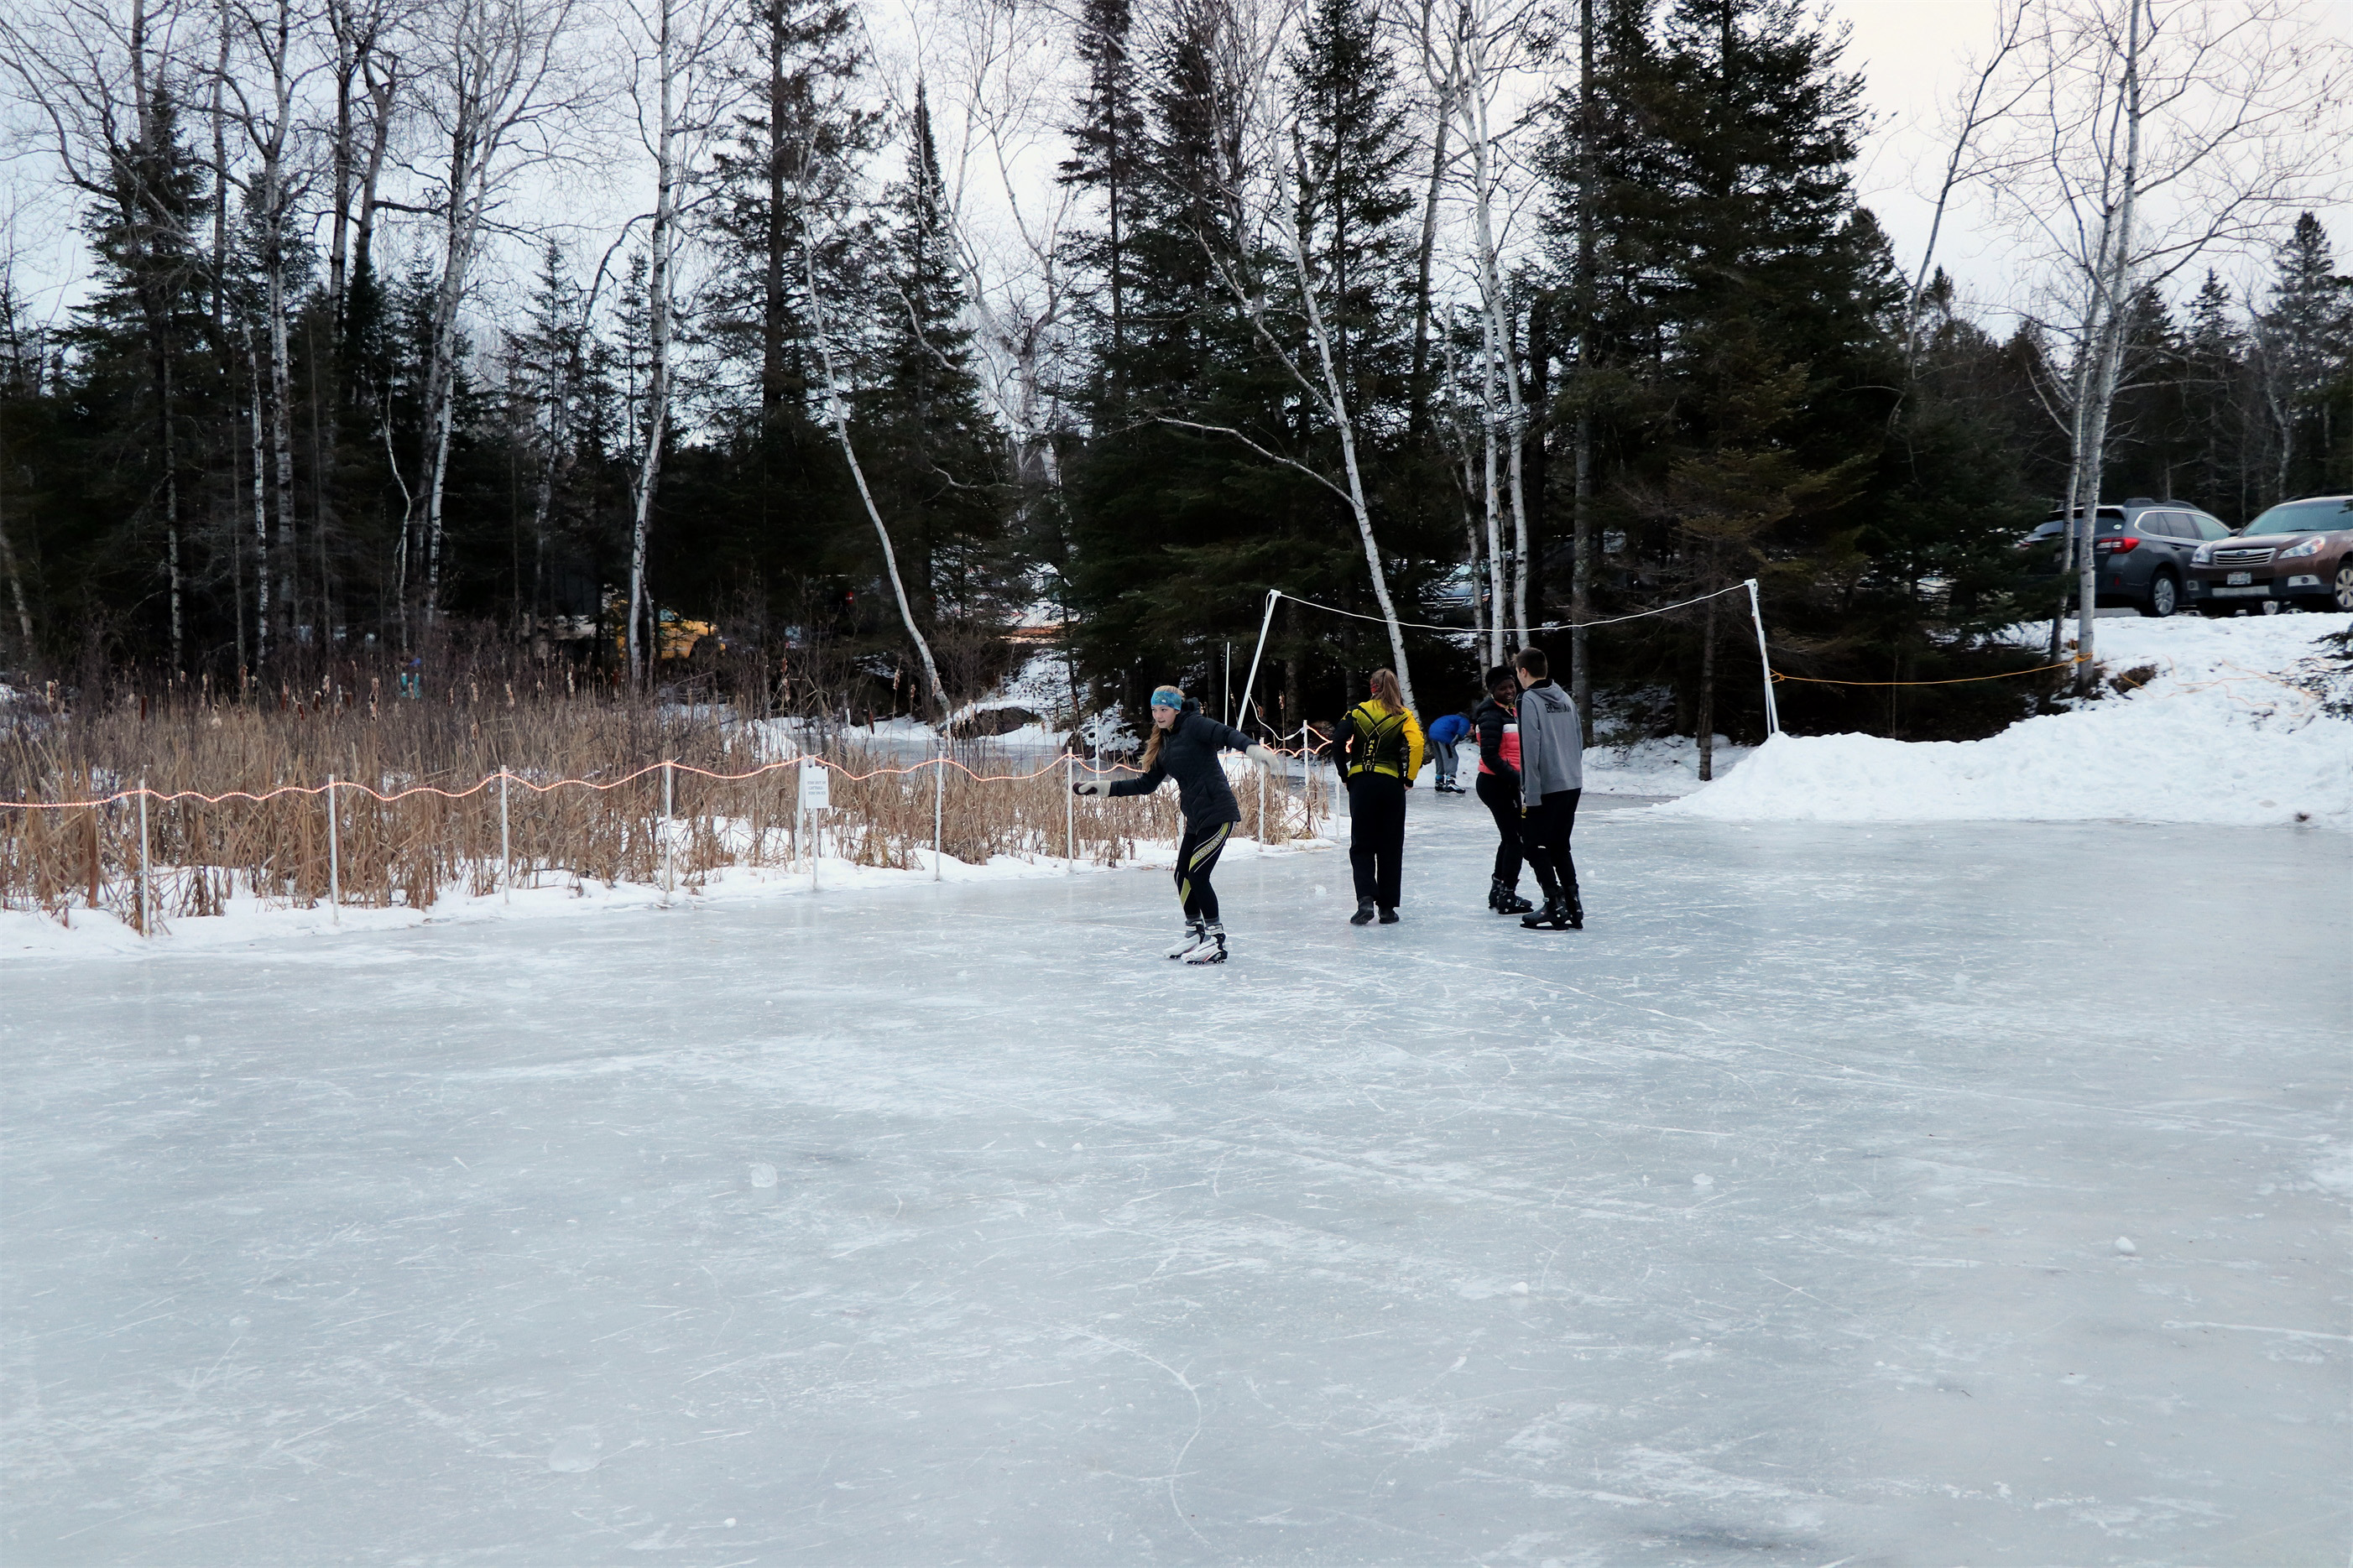 The skating pond at Minocqua Winter Park is a popular place for kids. Kim Johnson photo